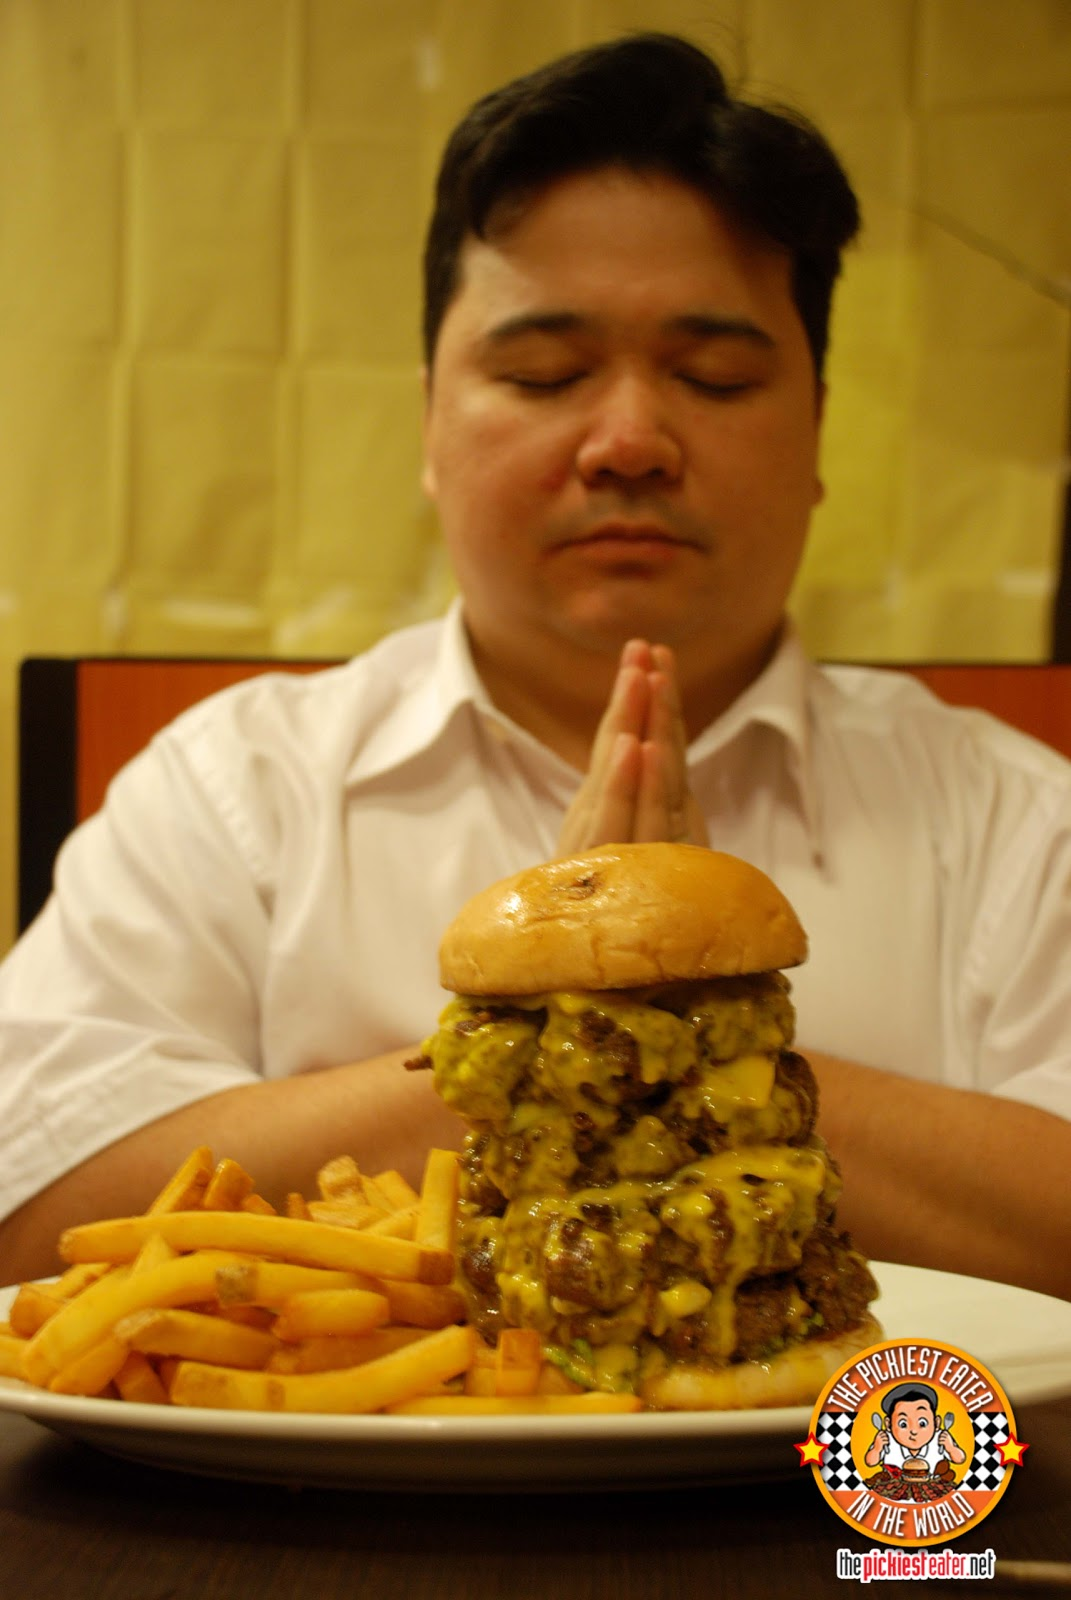 Worlds biggest burger man vs food